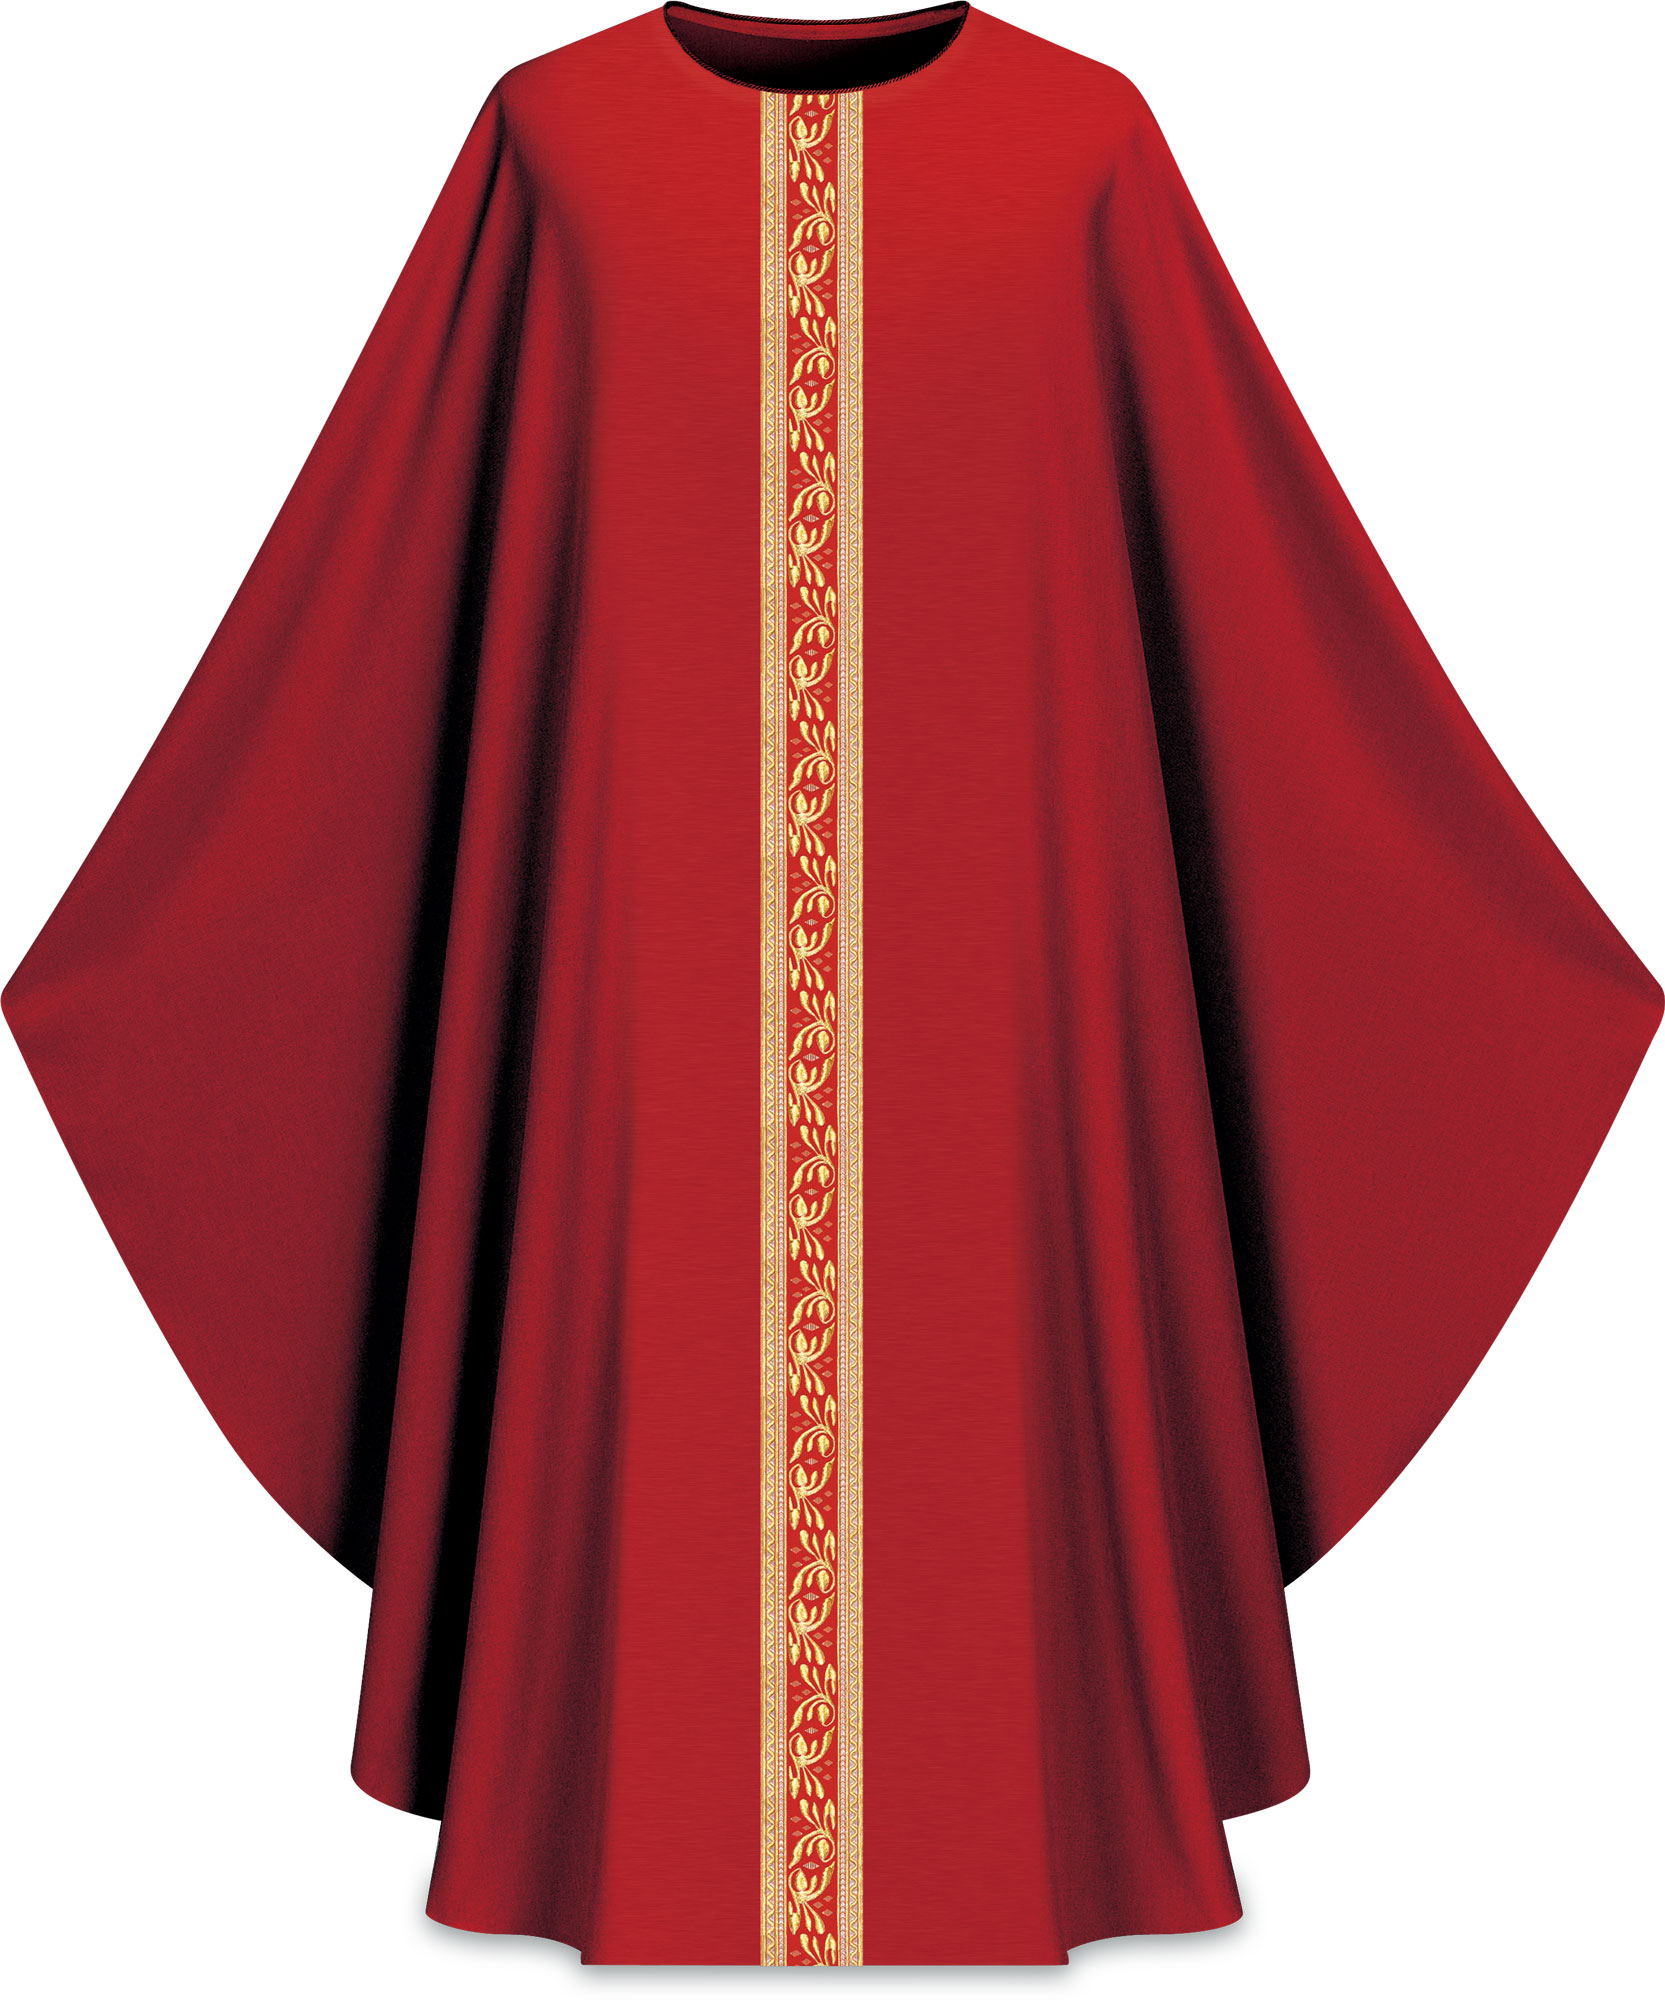 Chasuble - 5184 Red